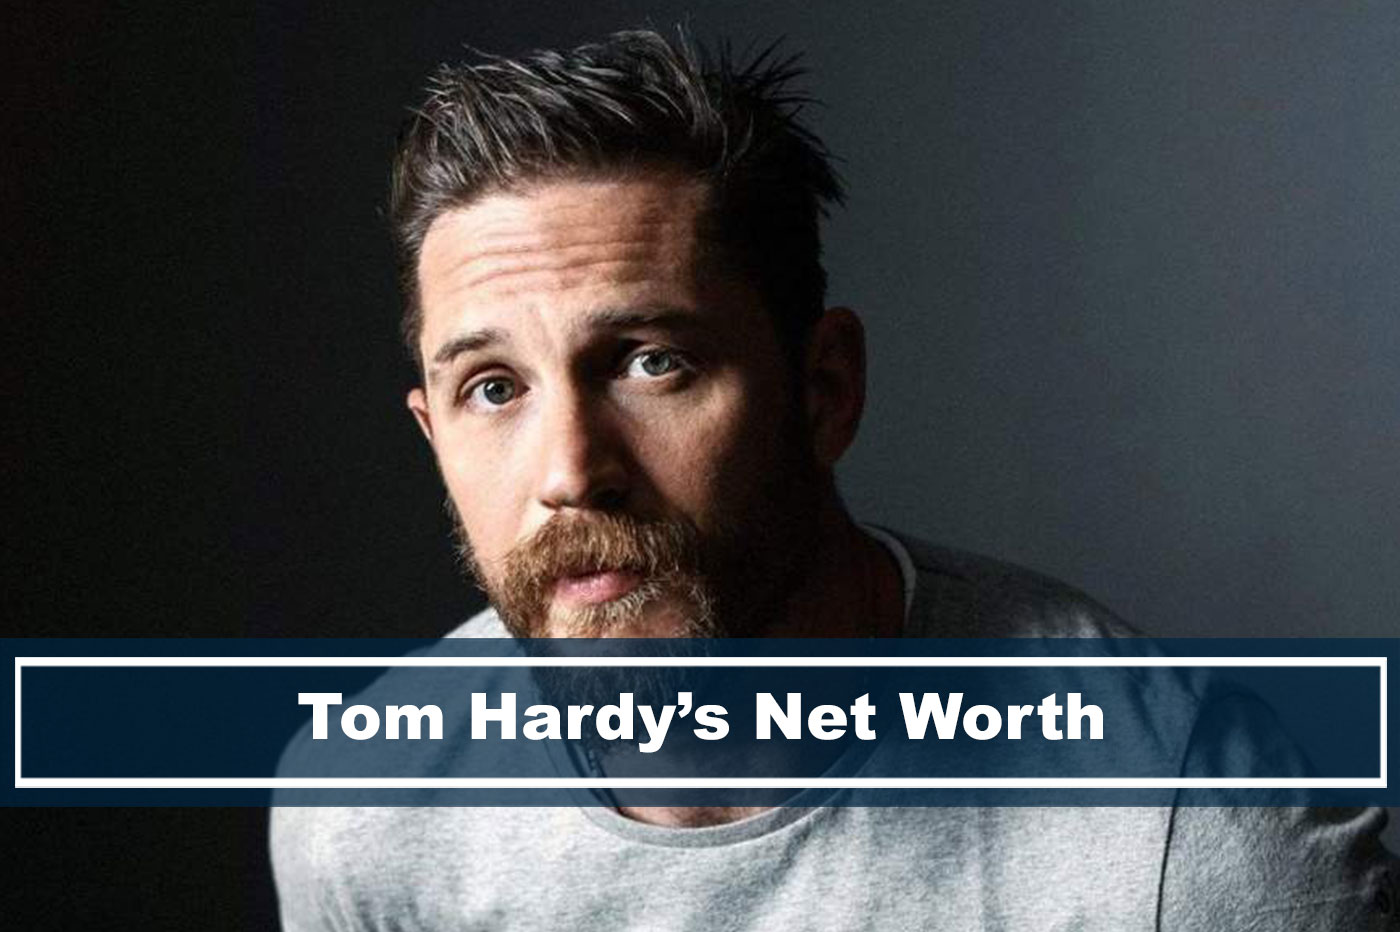 Tom Hardy's Current Net Worth approximately $45 Million Dollars